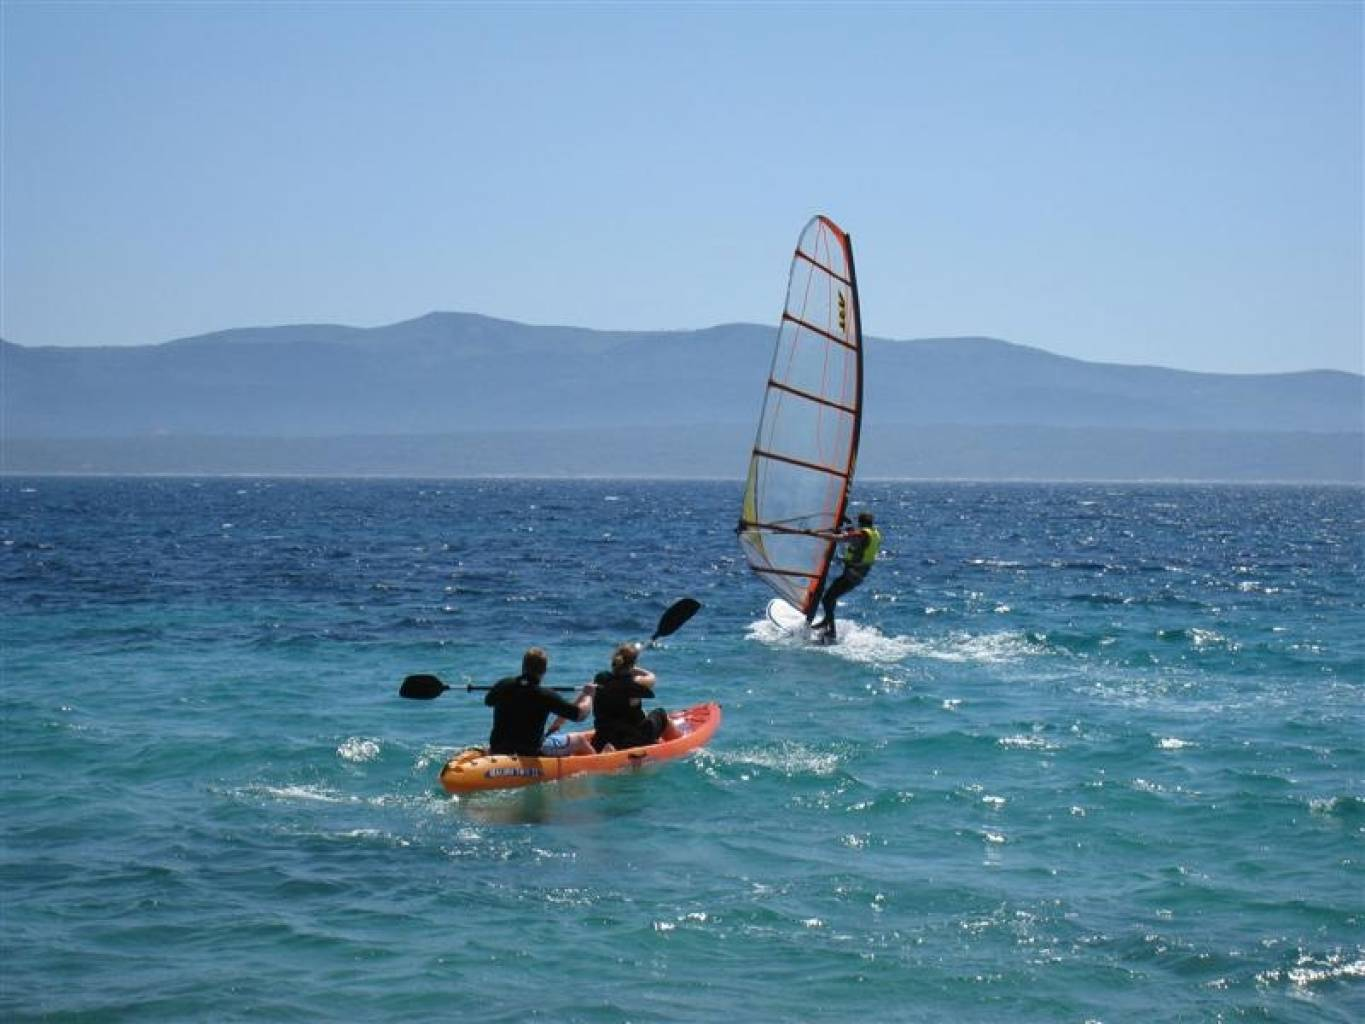 Sea kayaking and windsurfing